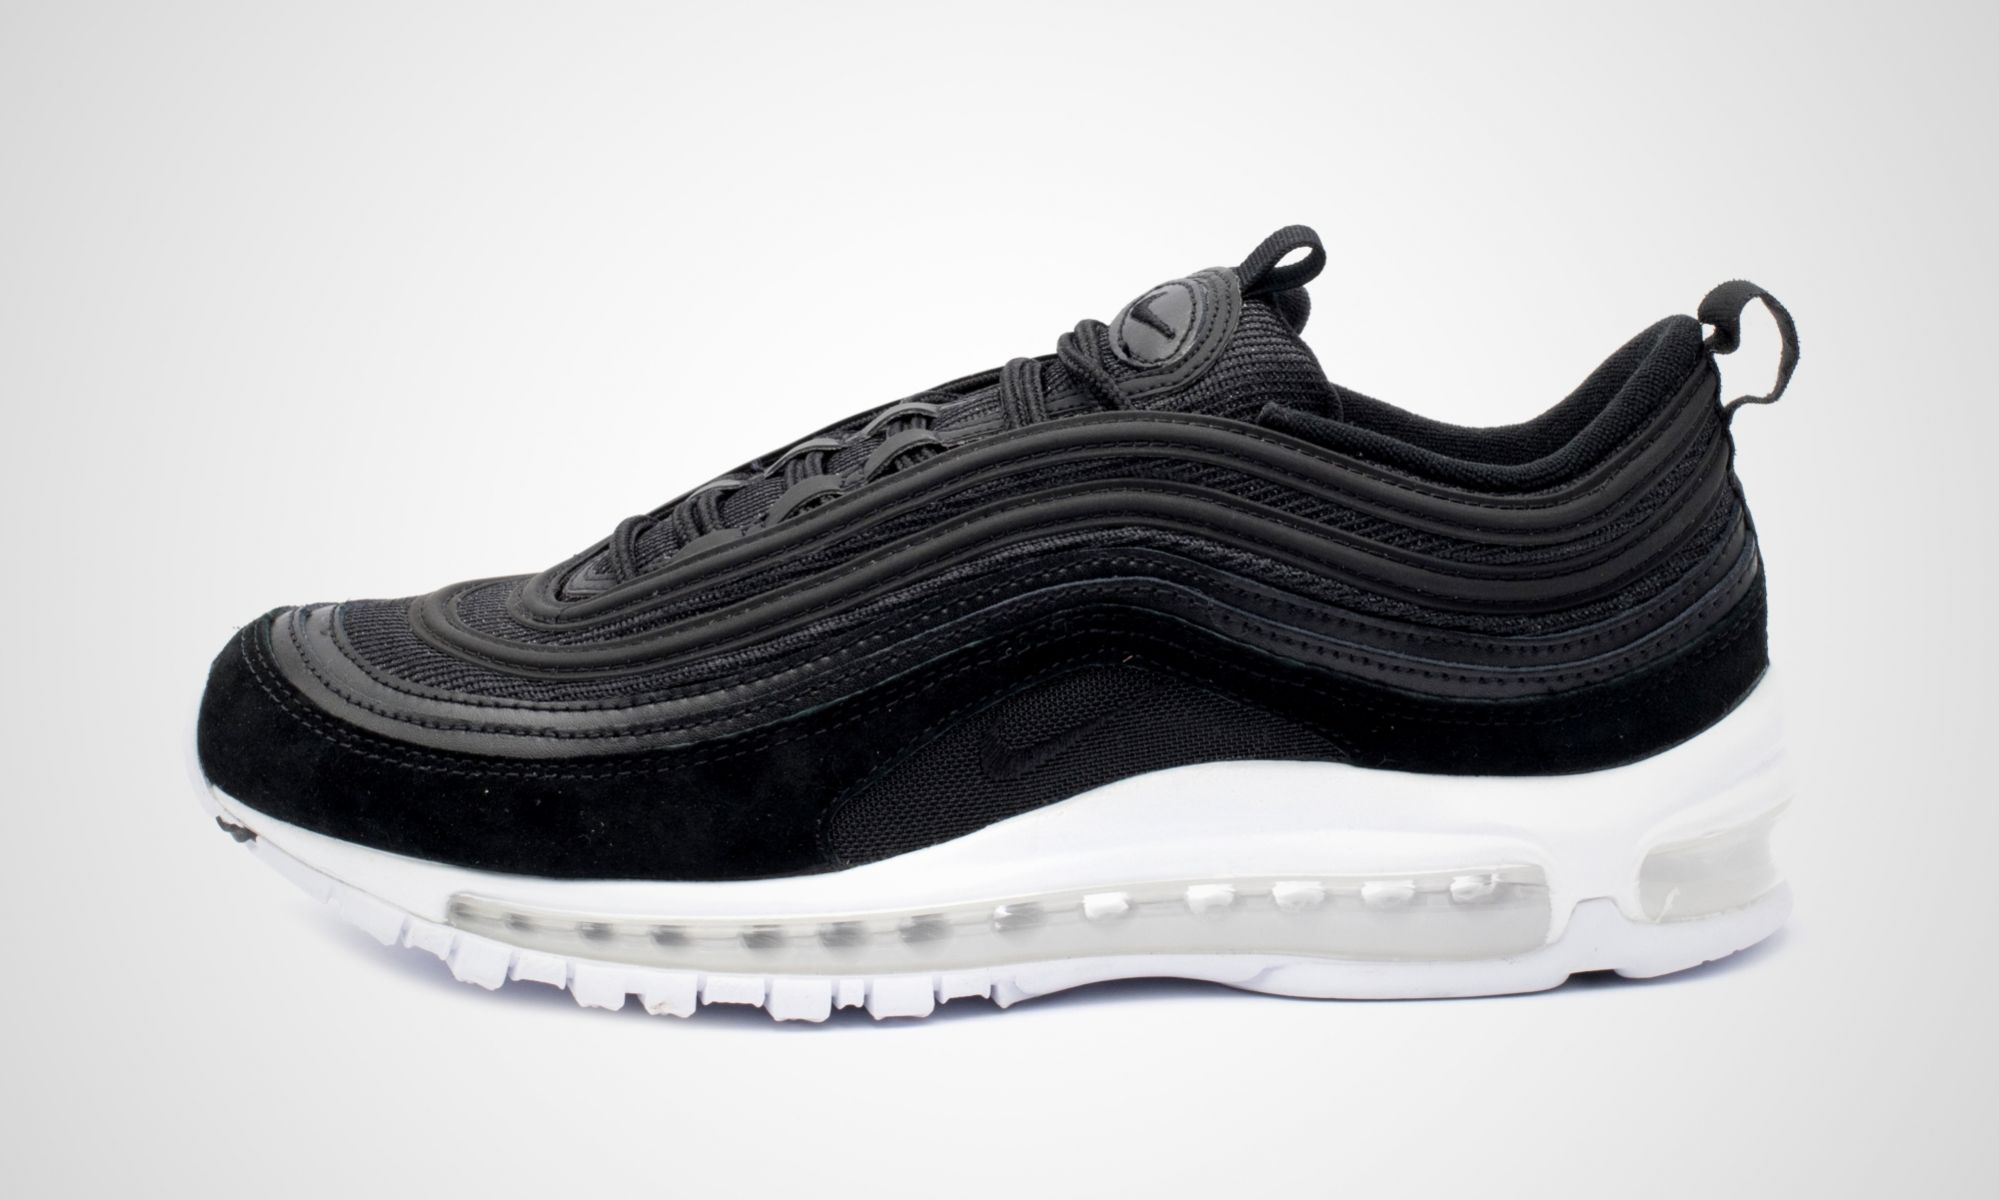 nike air max 97 black dead stock sneakerblog. Black Bedroom Furniture Sets. Home Design Ideas